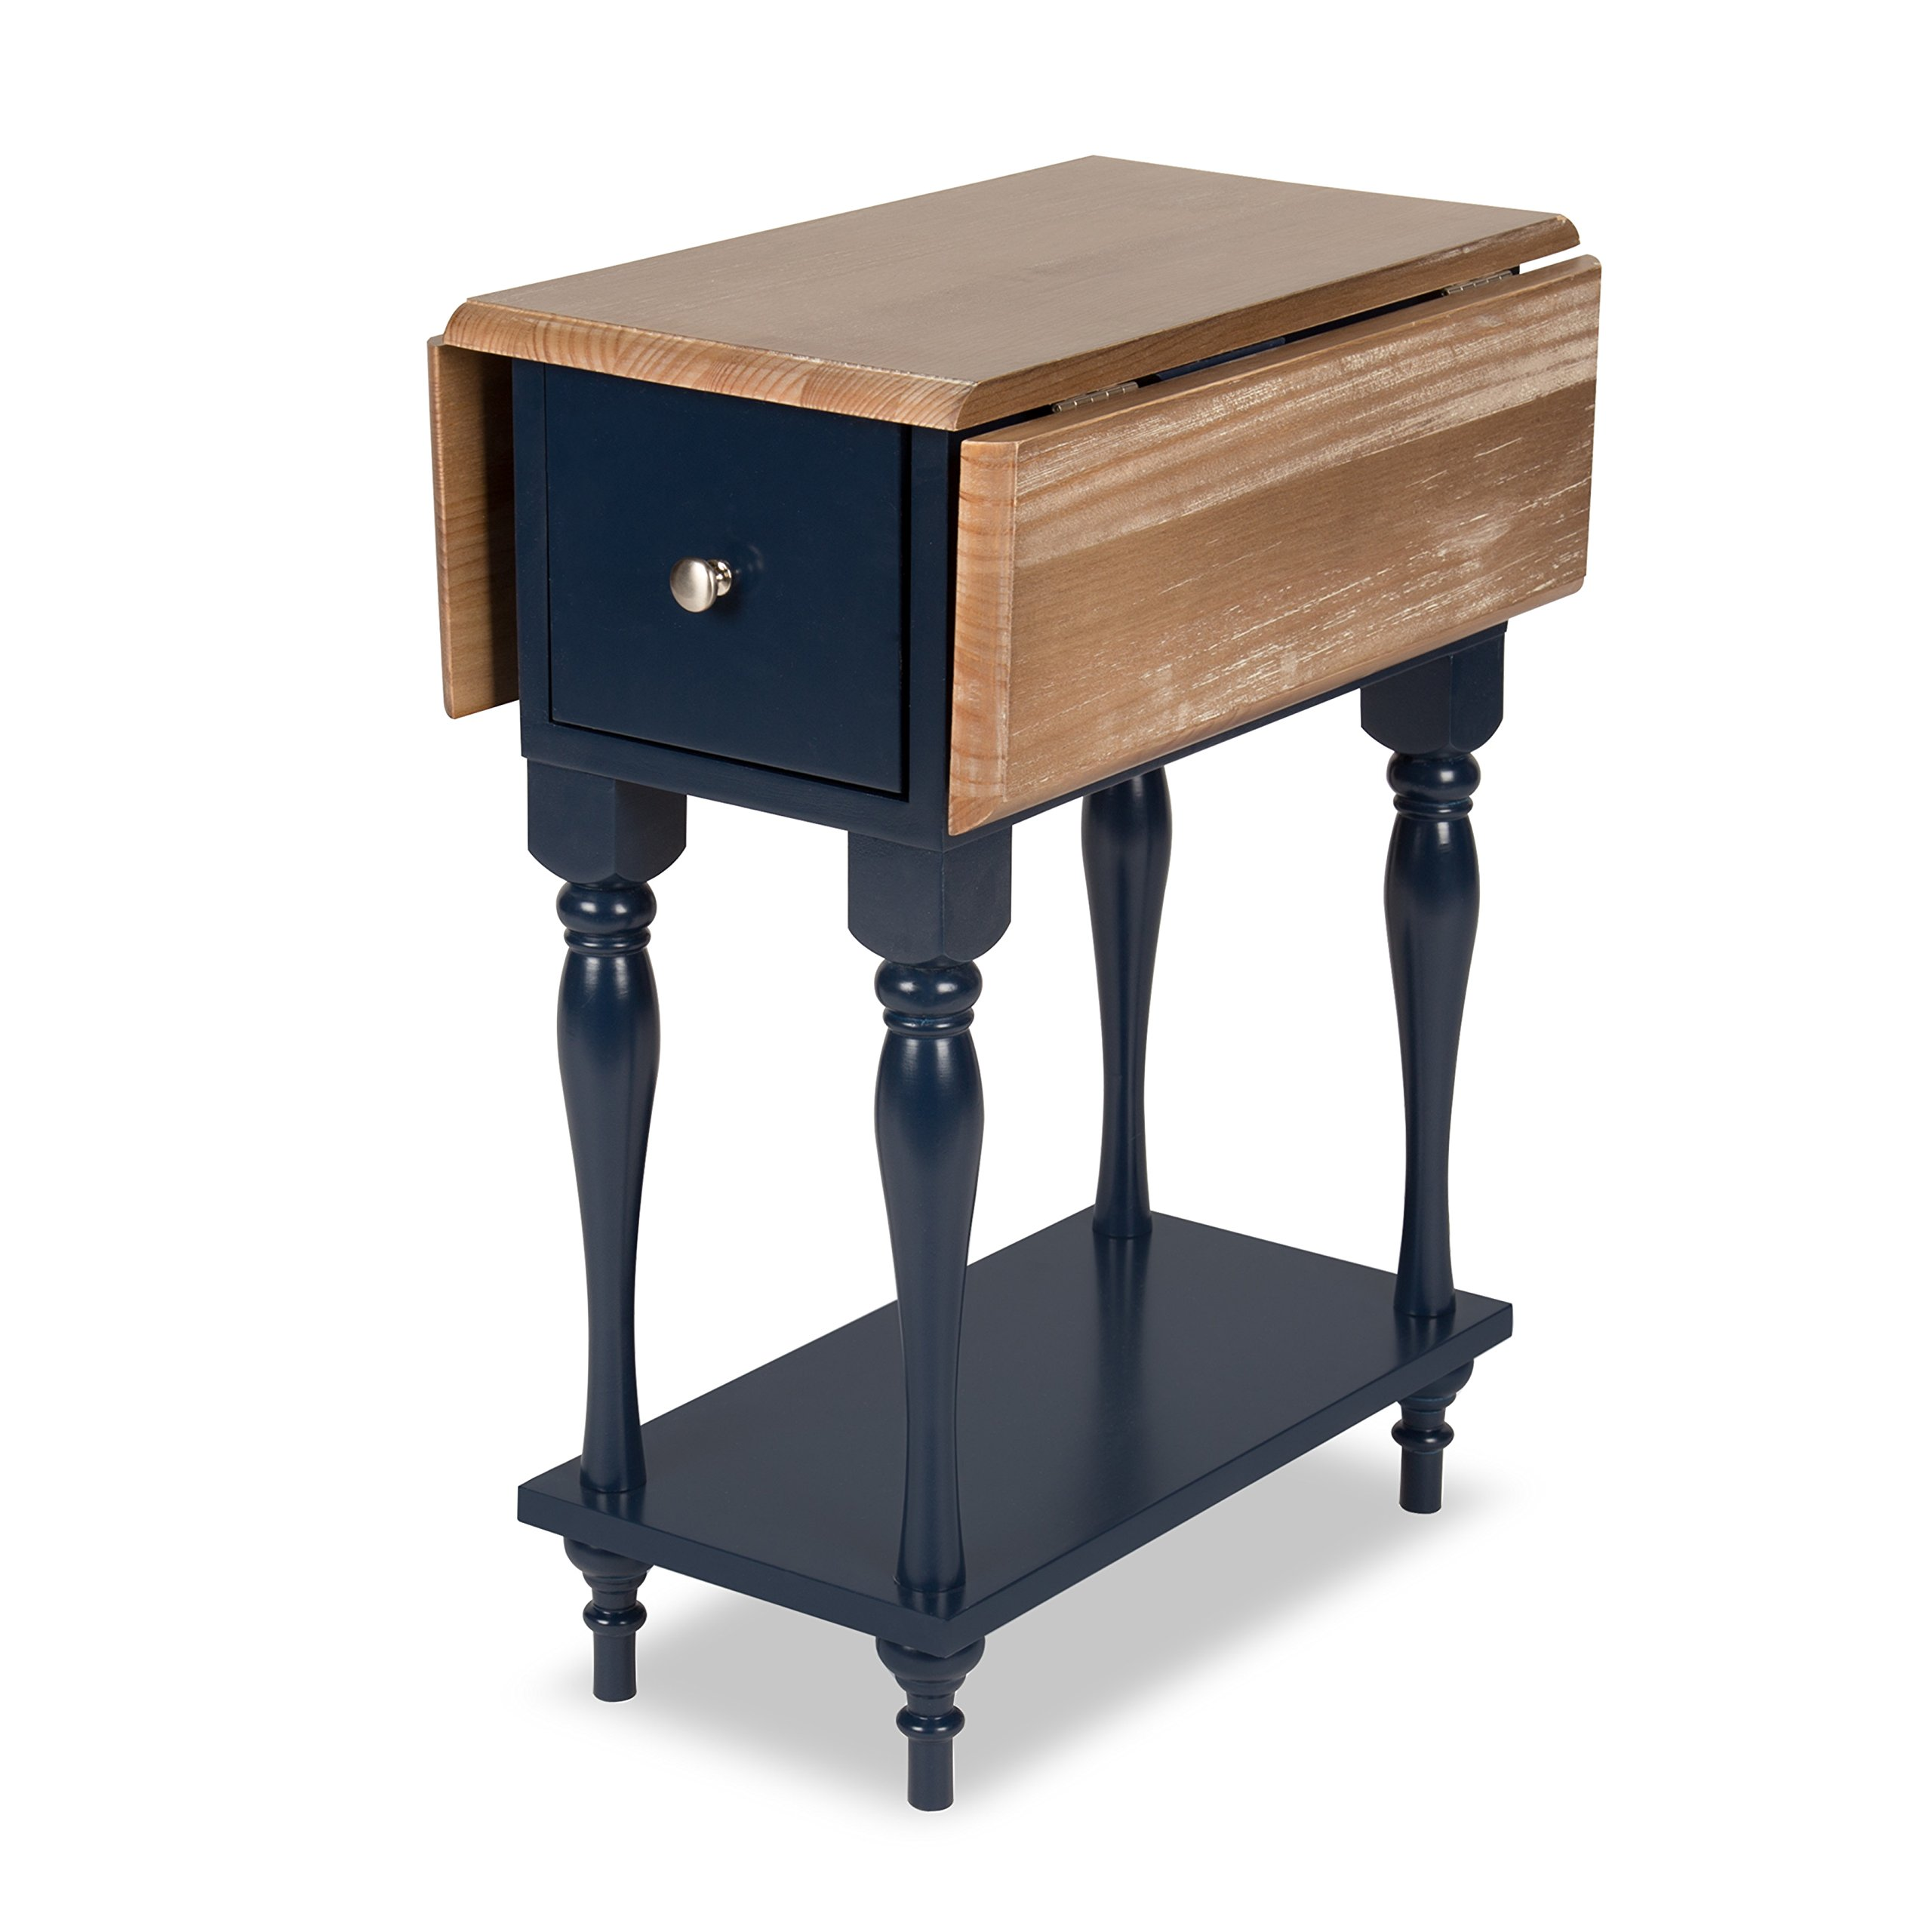 Kate and Laurel Sophia Rustic Wood Top Drop Leaf End Table with 2 Drawers and a Shelf, Navy Blue by Kate and Laurel